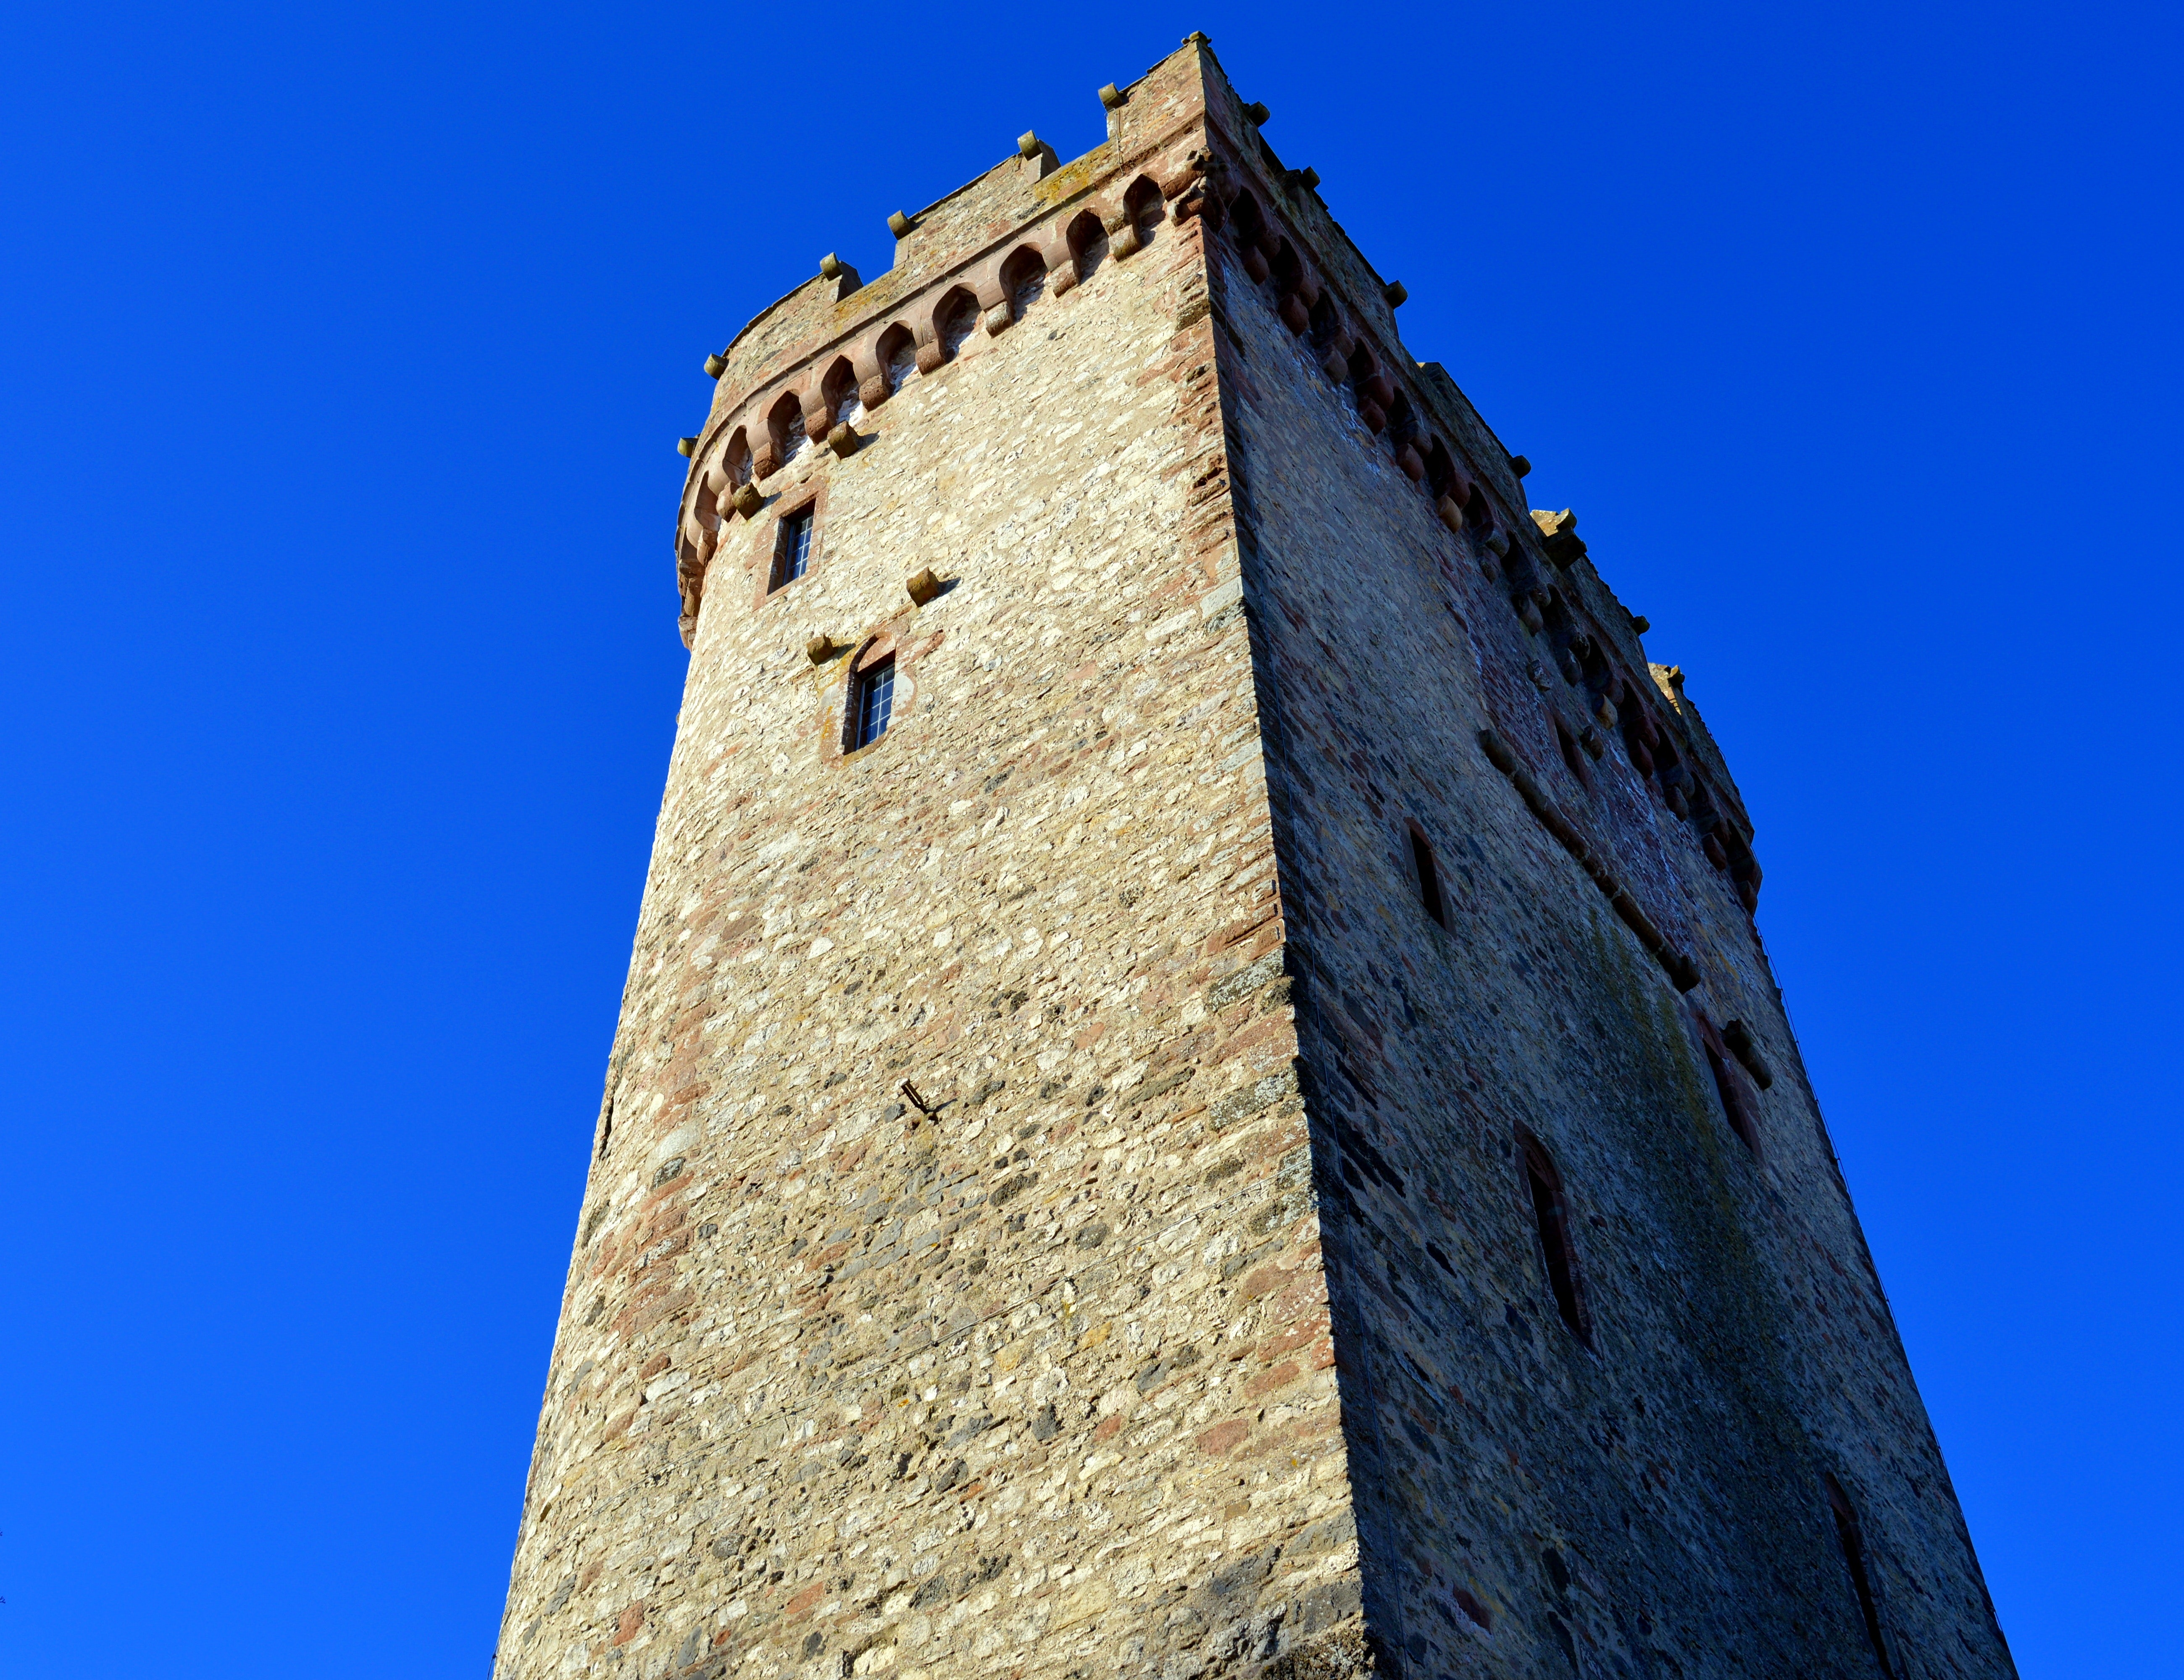 Low angle view of tower against clear blue sky photo